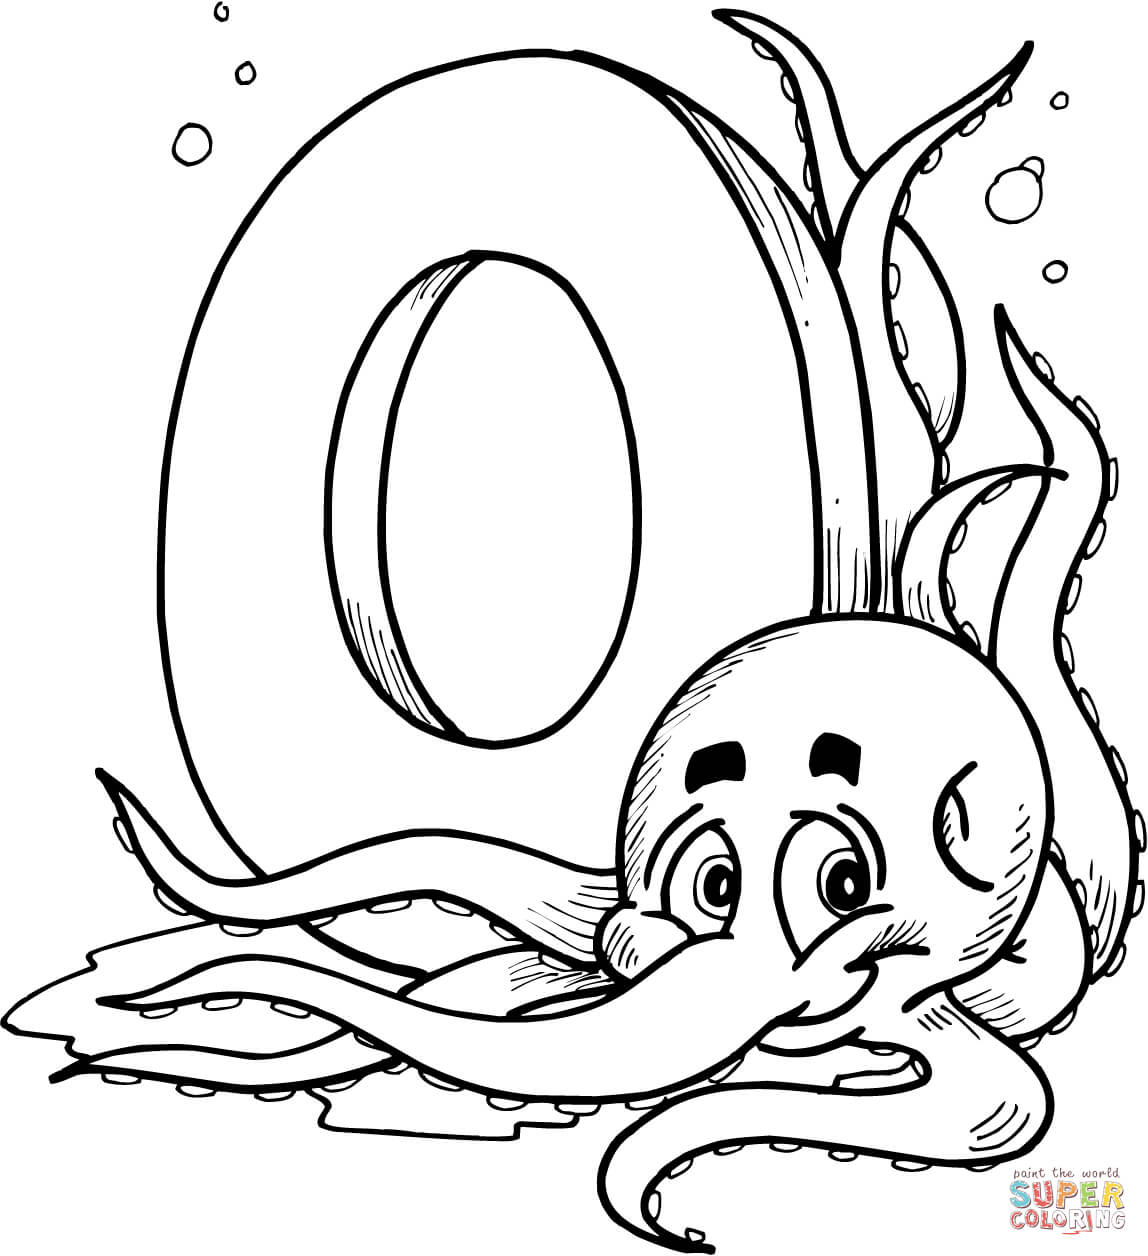 Free coloring page letter n - Letter N Coloring Pages Preschool Click The Letter O Is For Octopus Coloring Download